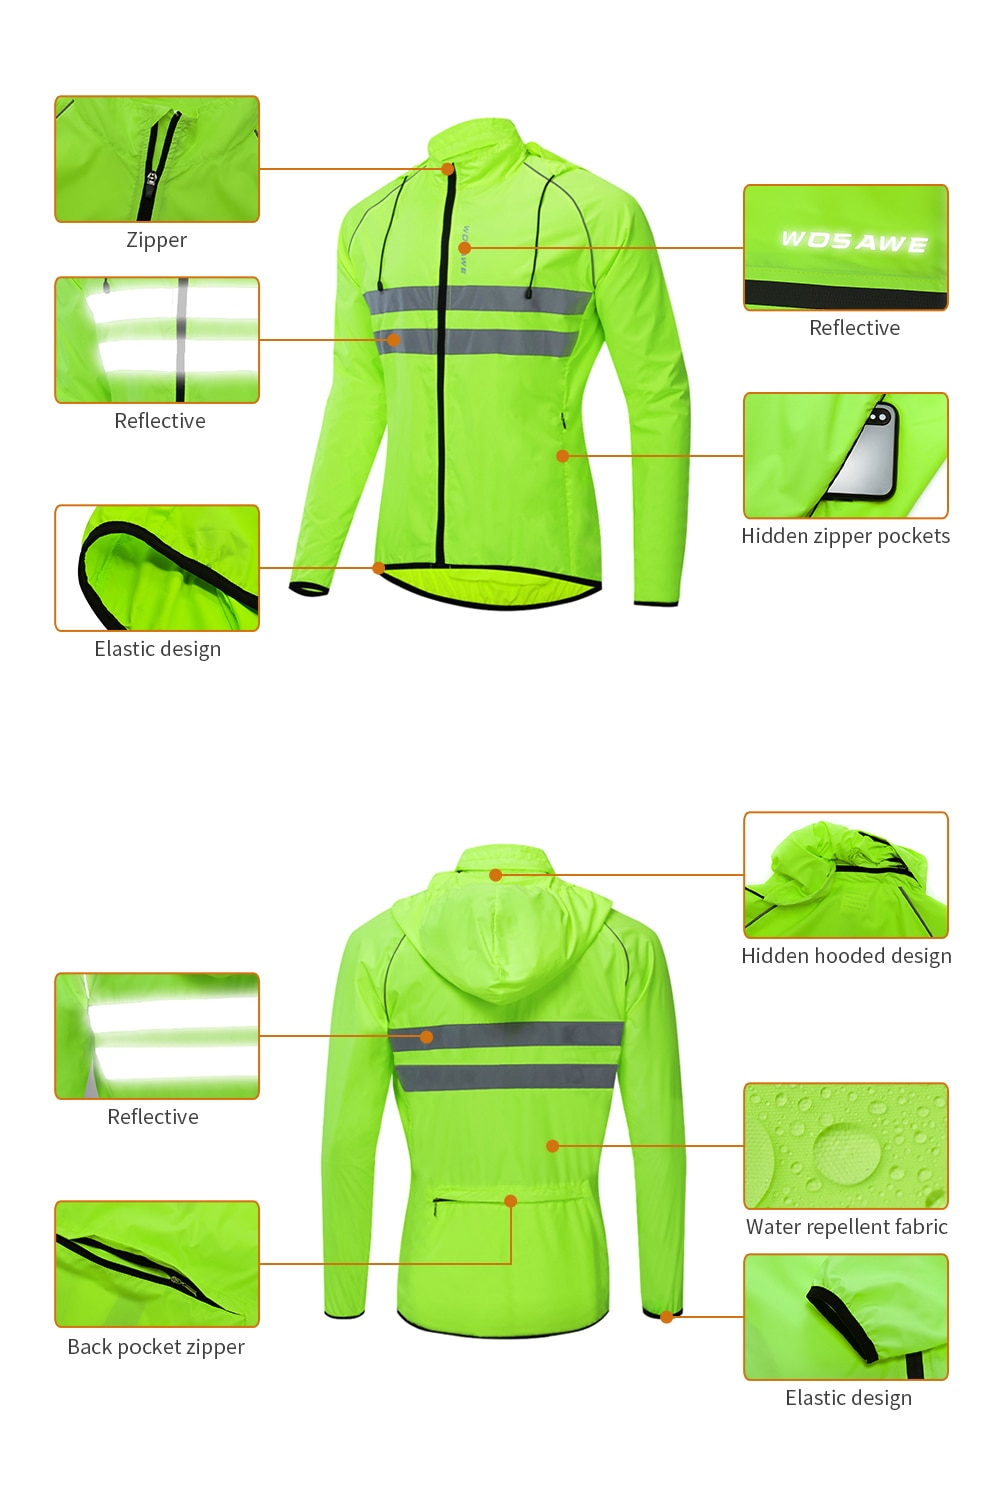 WOSAWE Reflective jacket High Visibility Jacket Waterproof Running Waistcoat Night Riding Safety Vest MTB Cycling Clothes enlarge